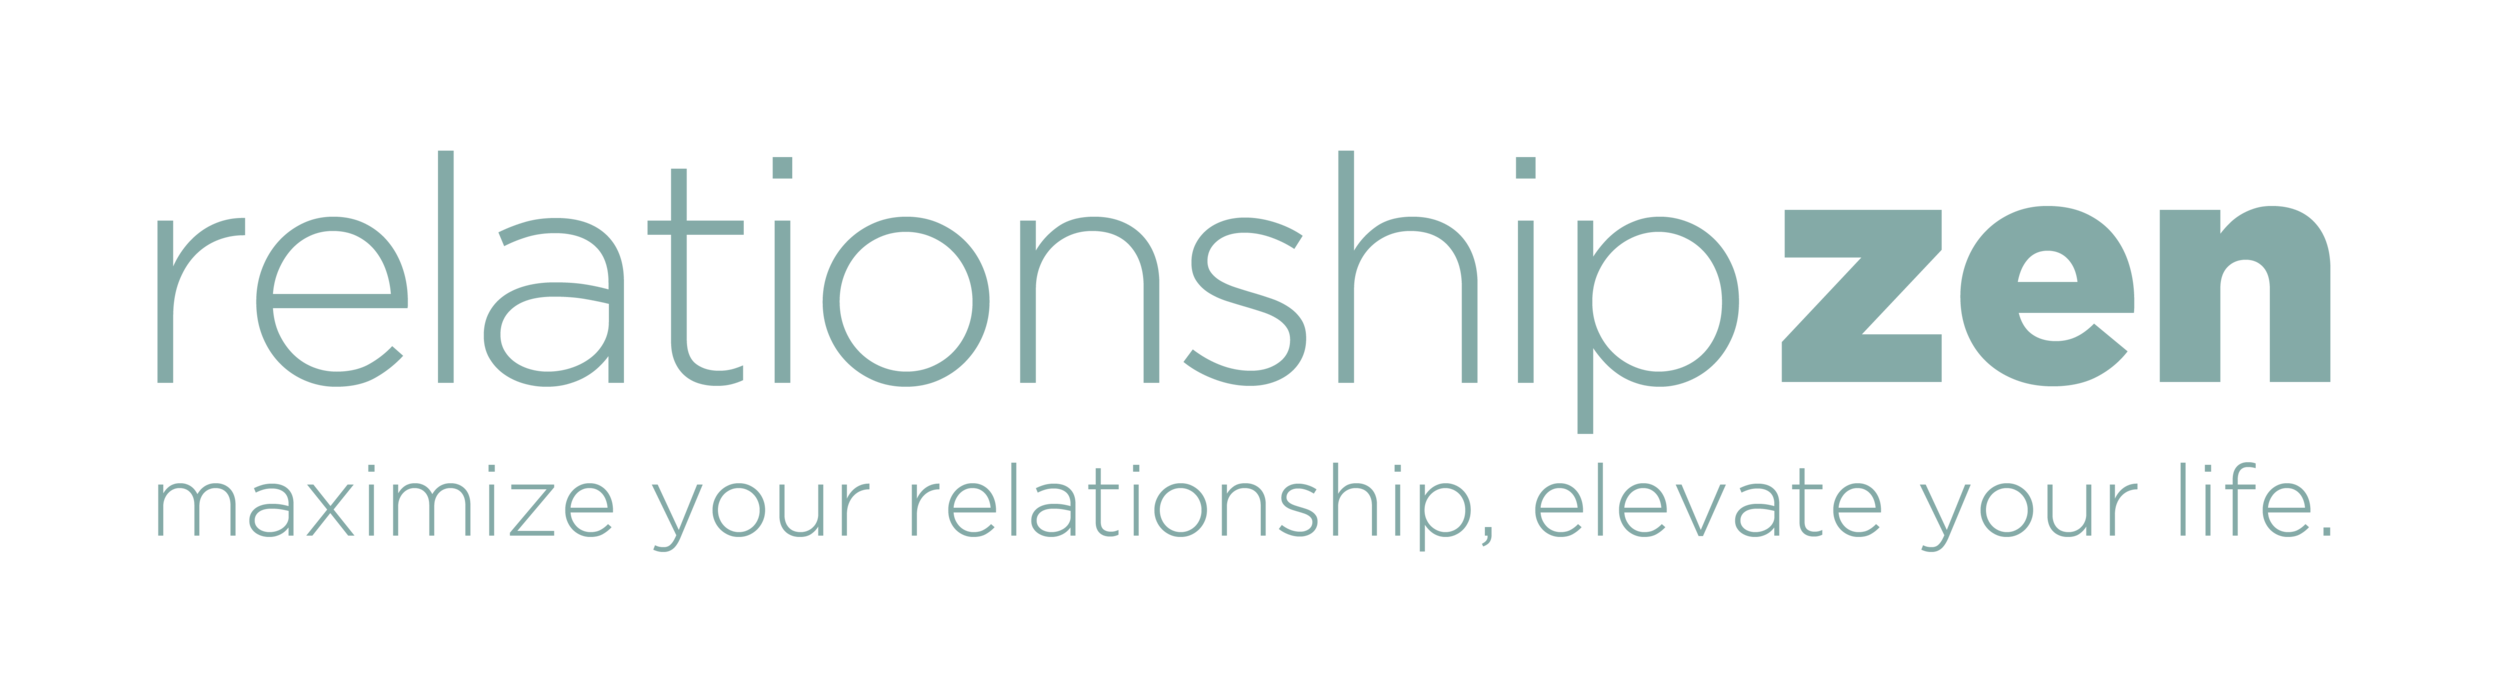 - Relationship Zen offers facilitation and insights  for relationship nerds like you who believe that improving their relationships elevates their lives, creates thriving families, and healthier communities.